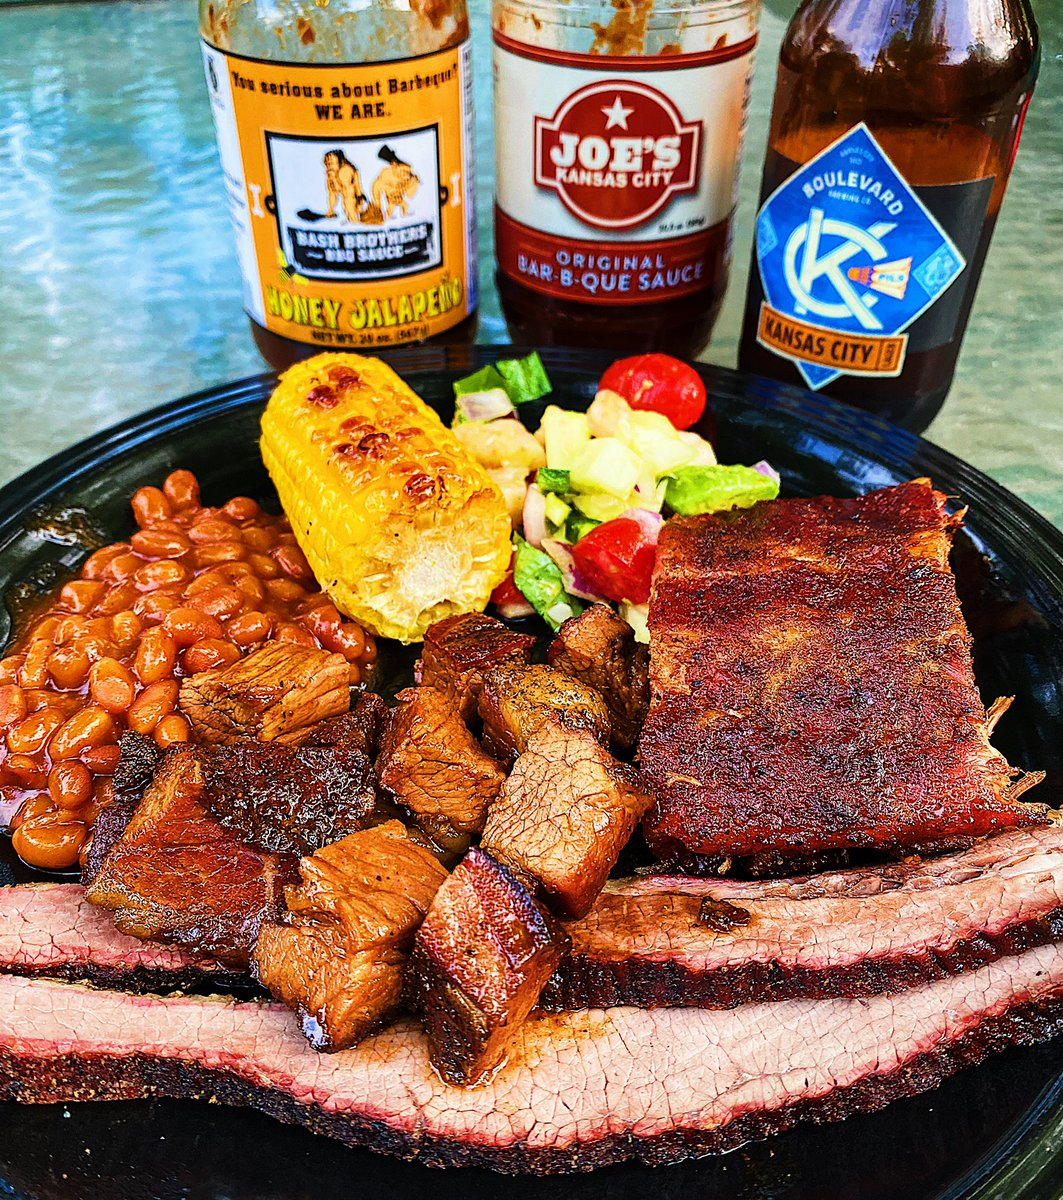 Perfect afternoon to do a lil smoking...meat ofcourse 😎  Had a little help from my friends @Boulevard_Beer, Joe's KC, & Bash Brothers BBQ.  Smoked: Brisket, Burnt Ends, and Pork Ribs Grilled: Corn and Beans Don't forget the greens: Shrimp Avocado Salad #kcfoodie #kc #smoking https://t.co/RwkhtAgiMQ